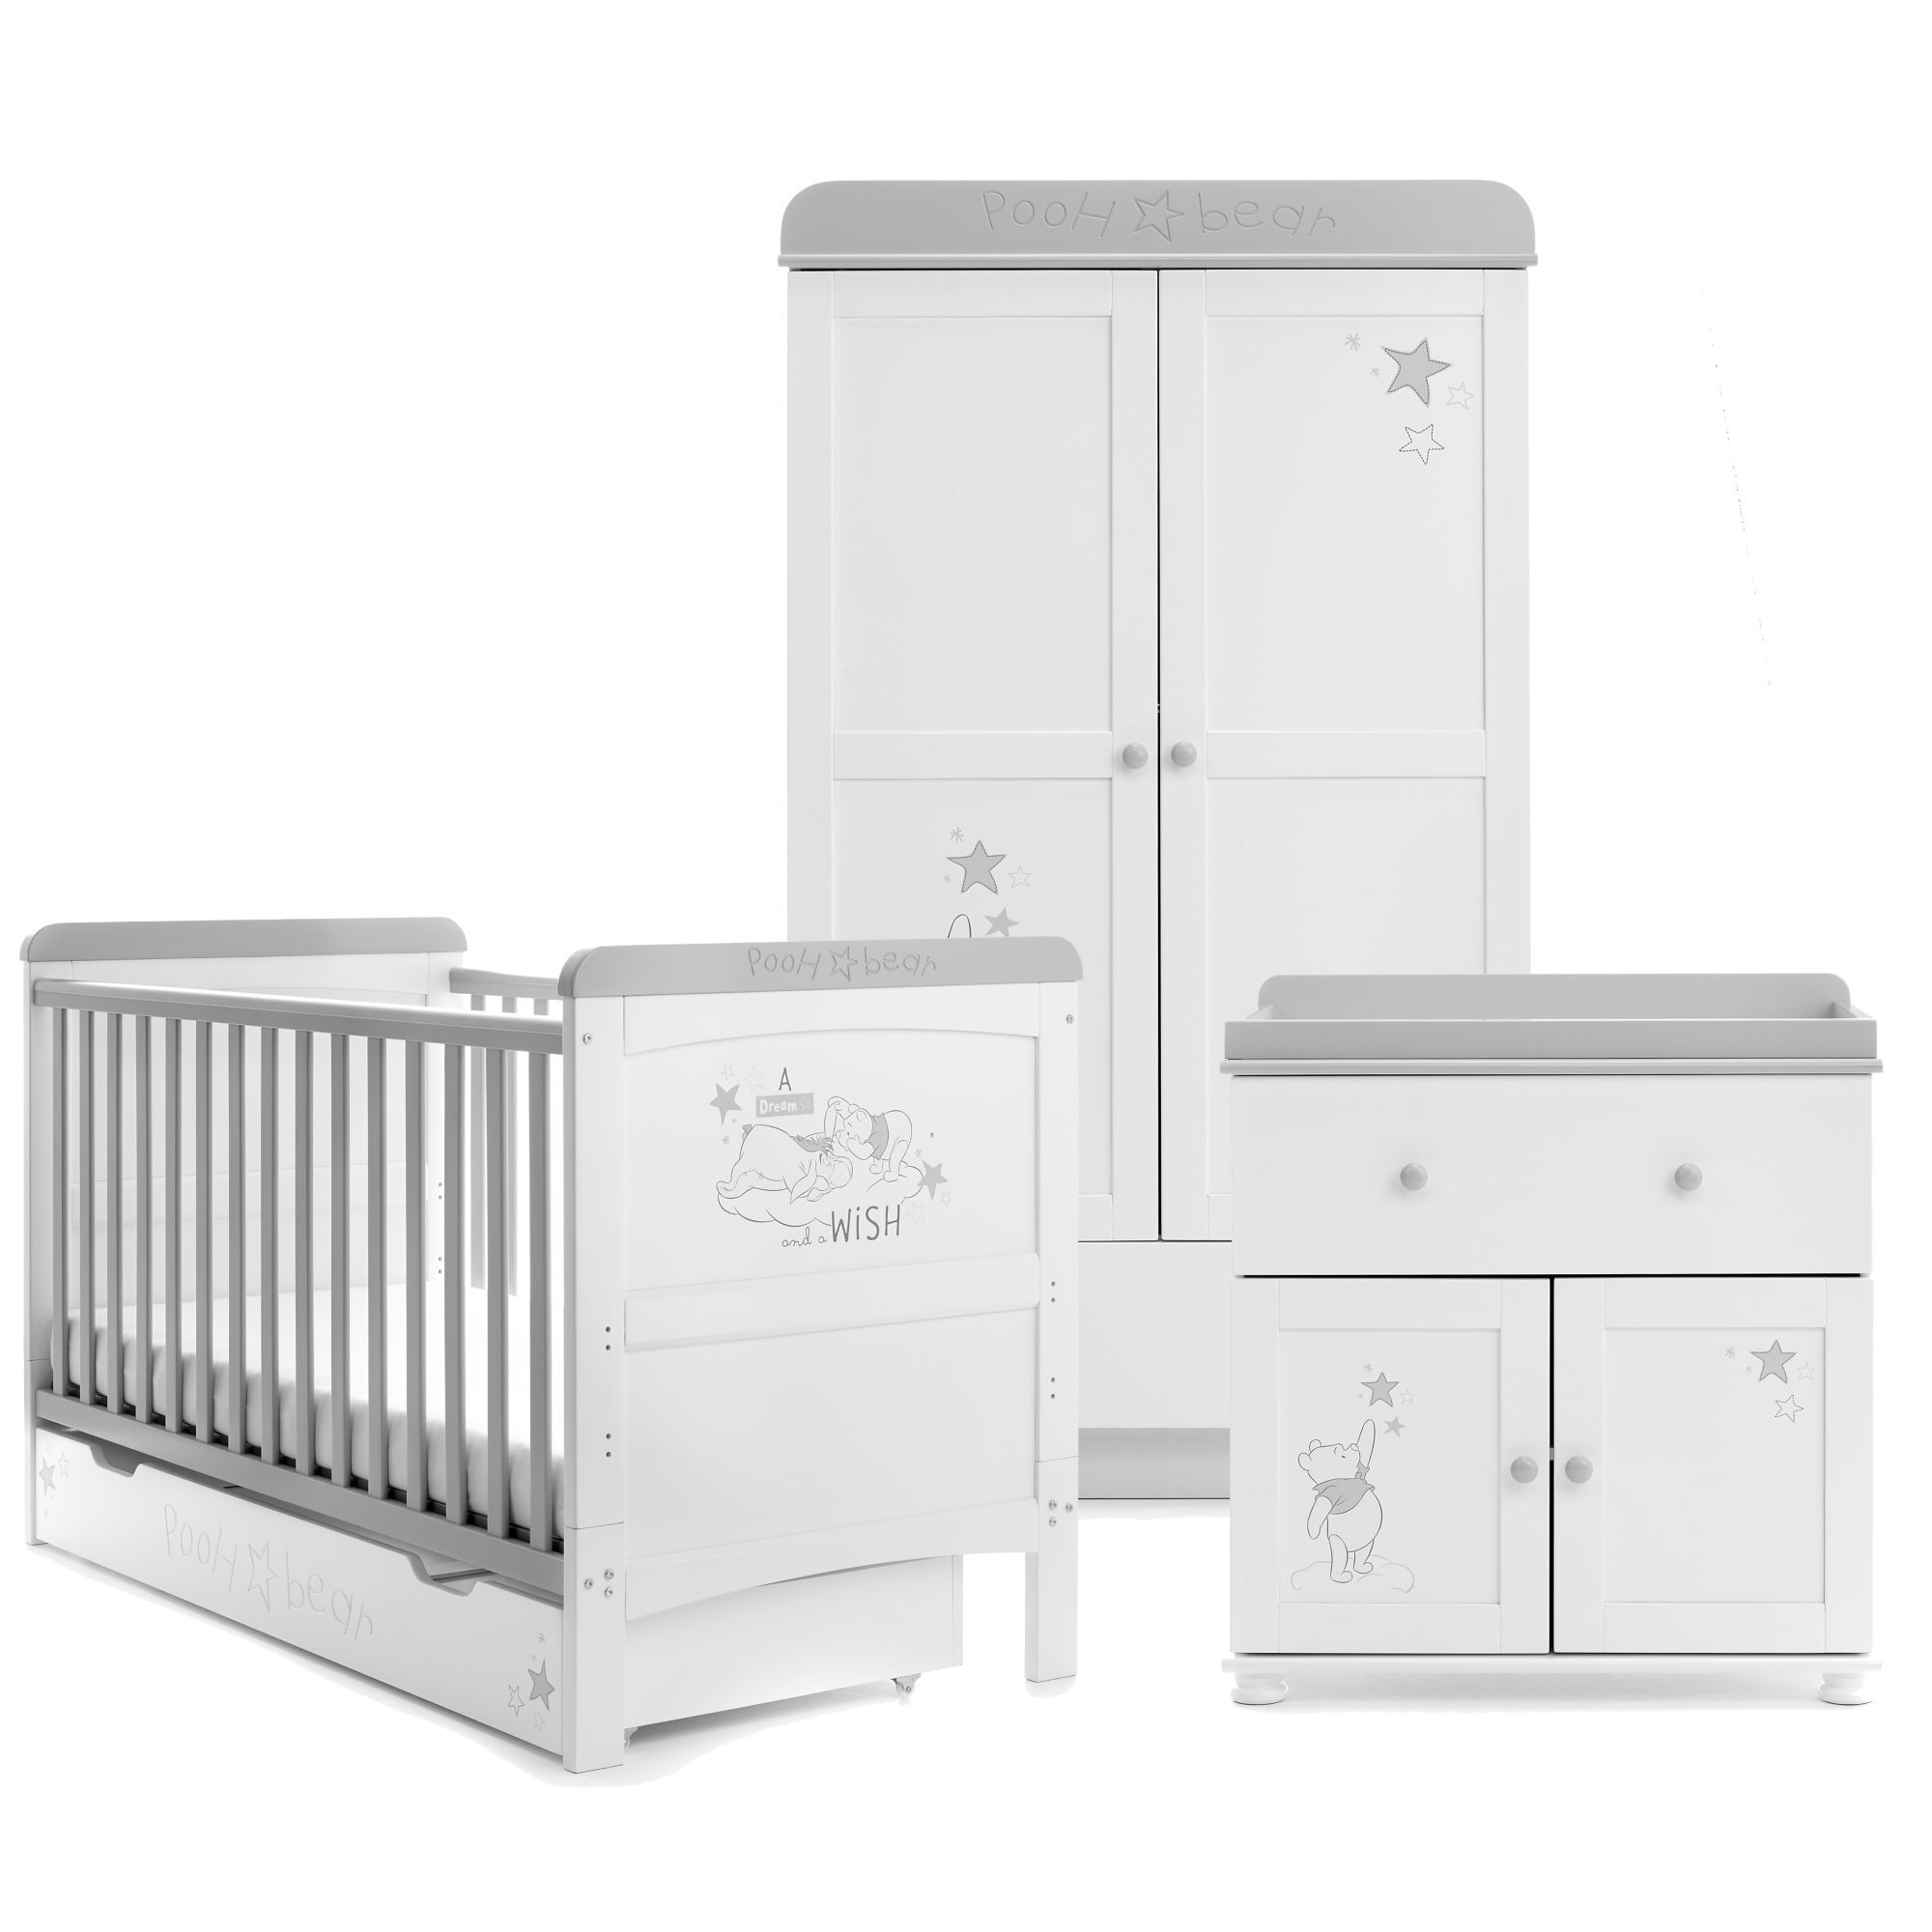 Disney Winnie The Pooh 3 Piece Nursery Furniture Set